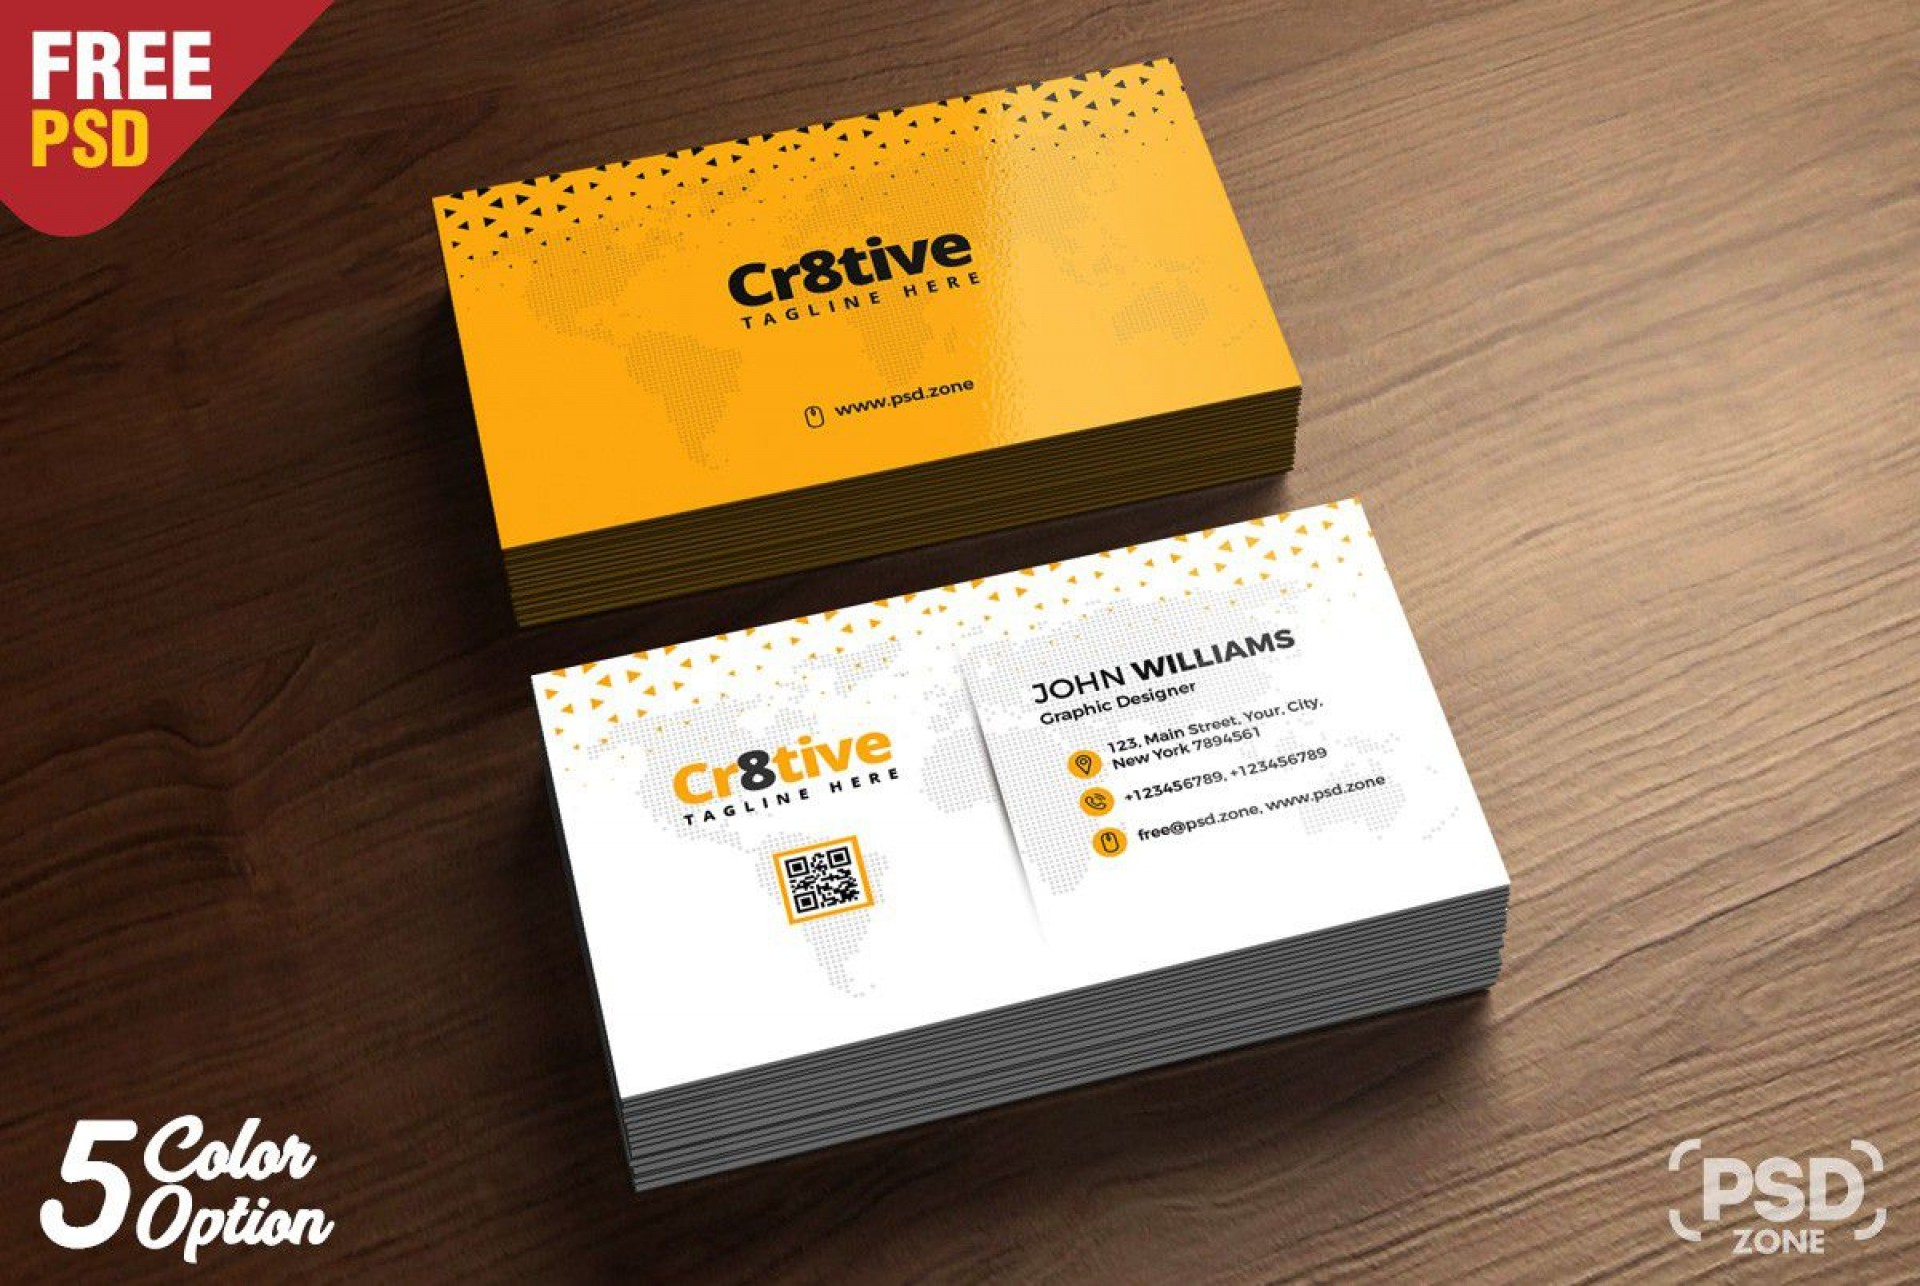 000 Outstanding Simple Busines Card Template Psd Inspiration  Design In Photoshop Minimalist Free1920